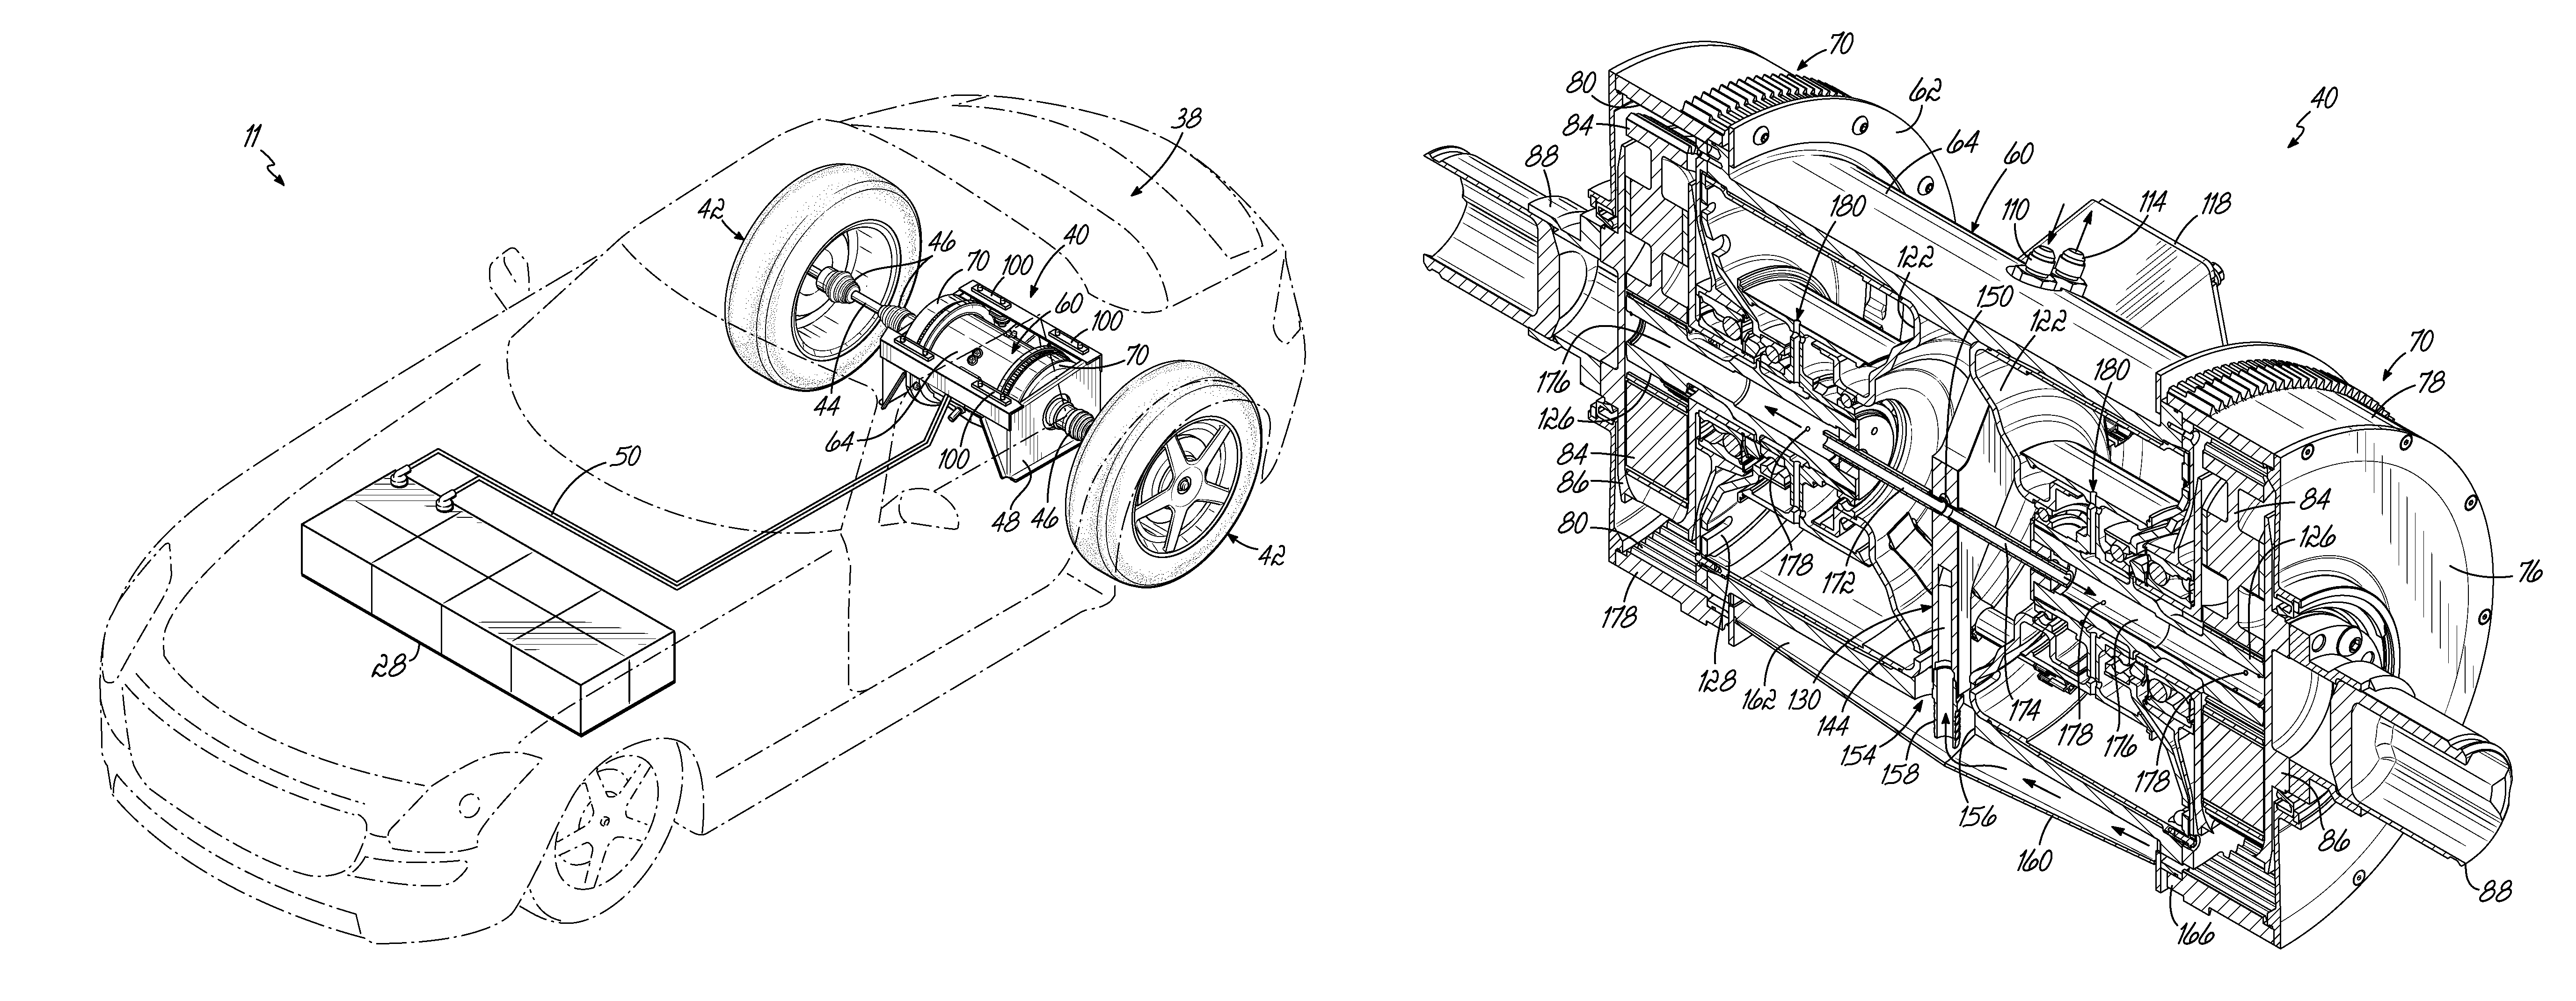 Tesla Engine Diagram Patent Us Drive Module And Manifold For Electric Motor Drawing Turbine Links